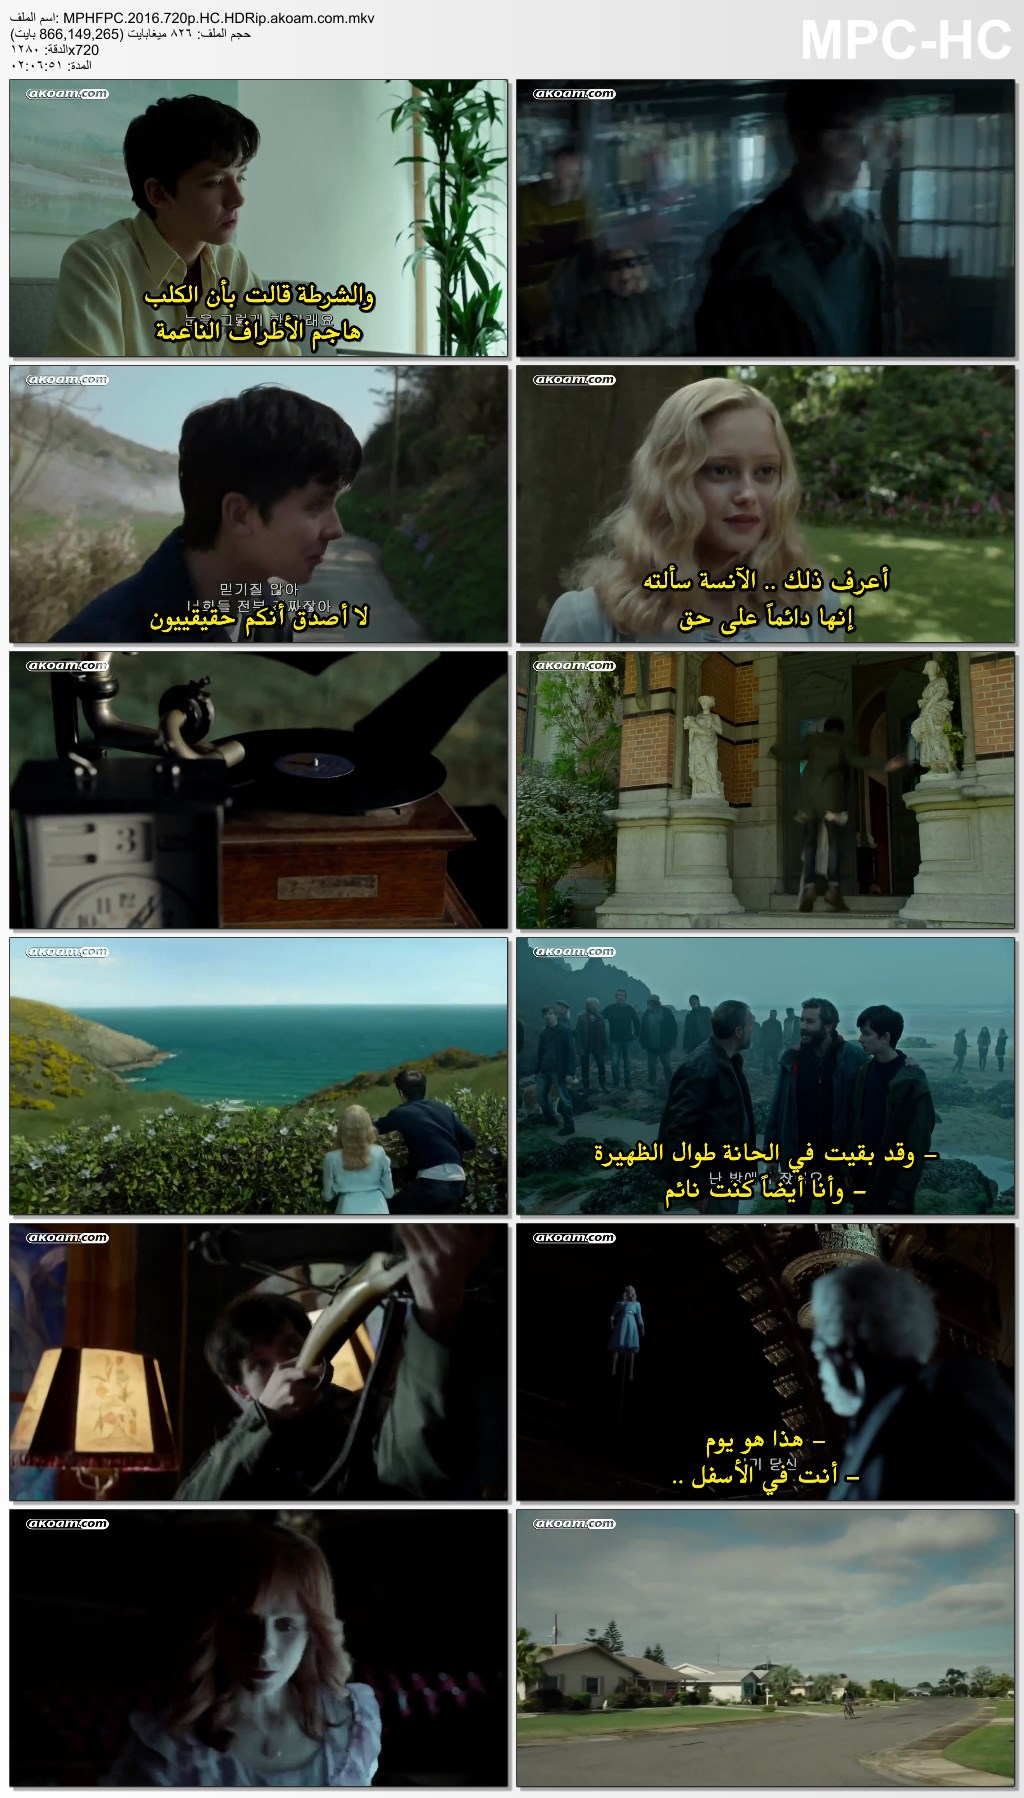 Miss Peregrine's Home for Peculiar Children,Miss Peregrines Home for Peculiar Children,المغامرات,الدراما,الفانتازيا,العائلي